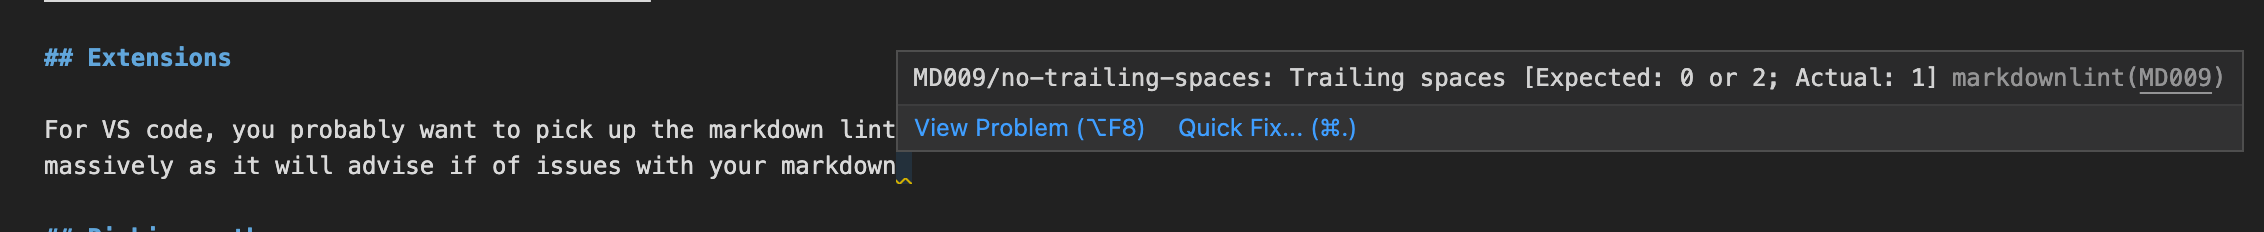 image shows a message explaining that the text block ends with a space